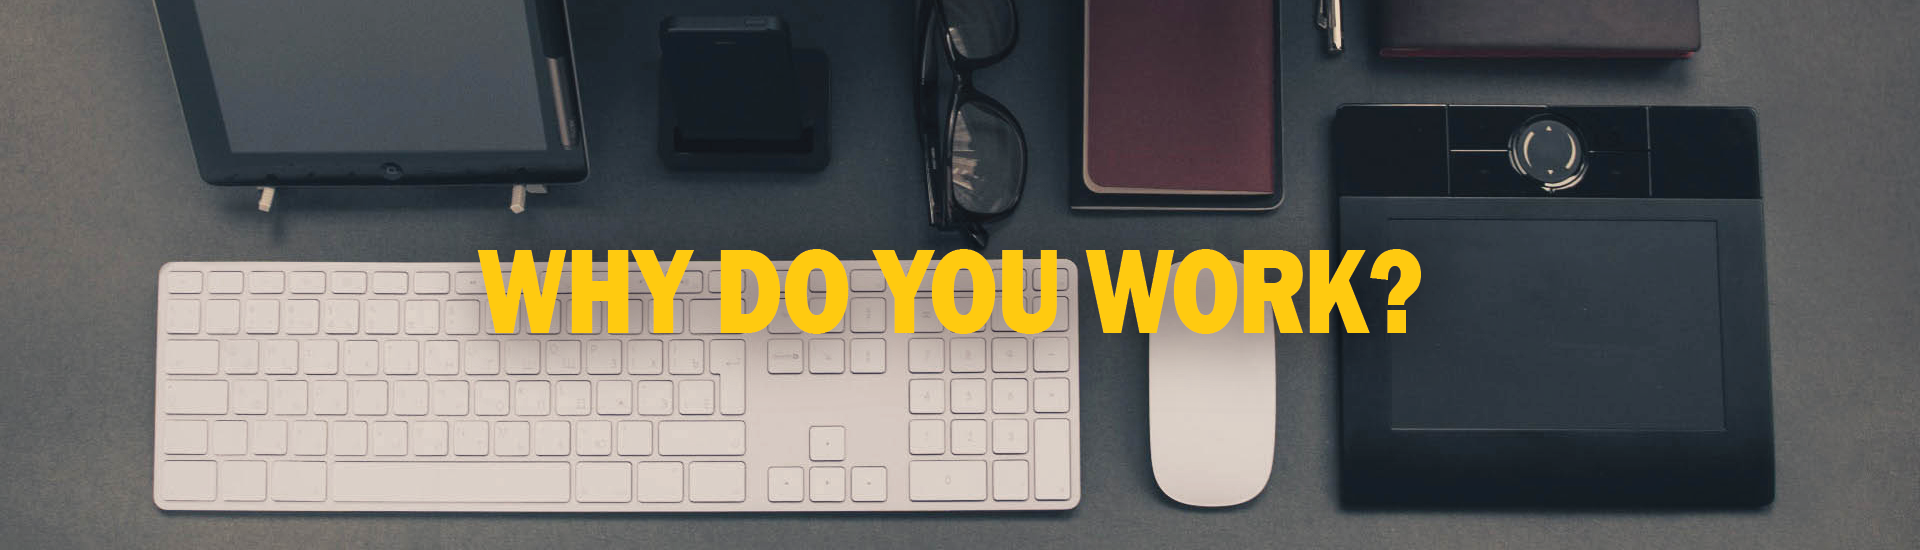 Why do you work? in yellow text over a photo of a computer workstation